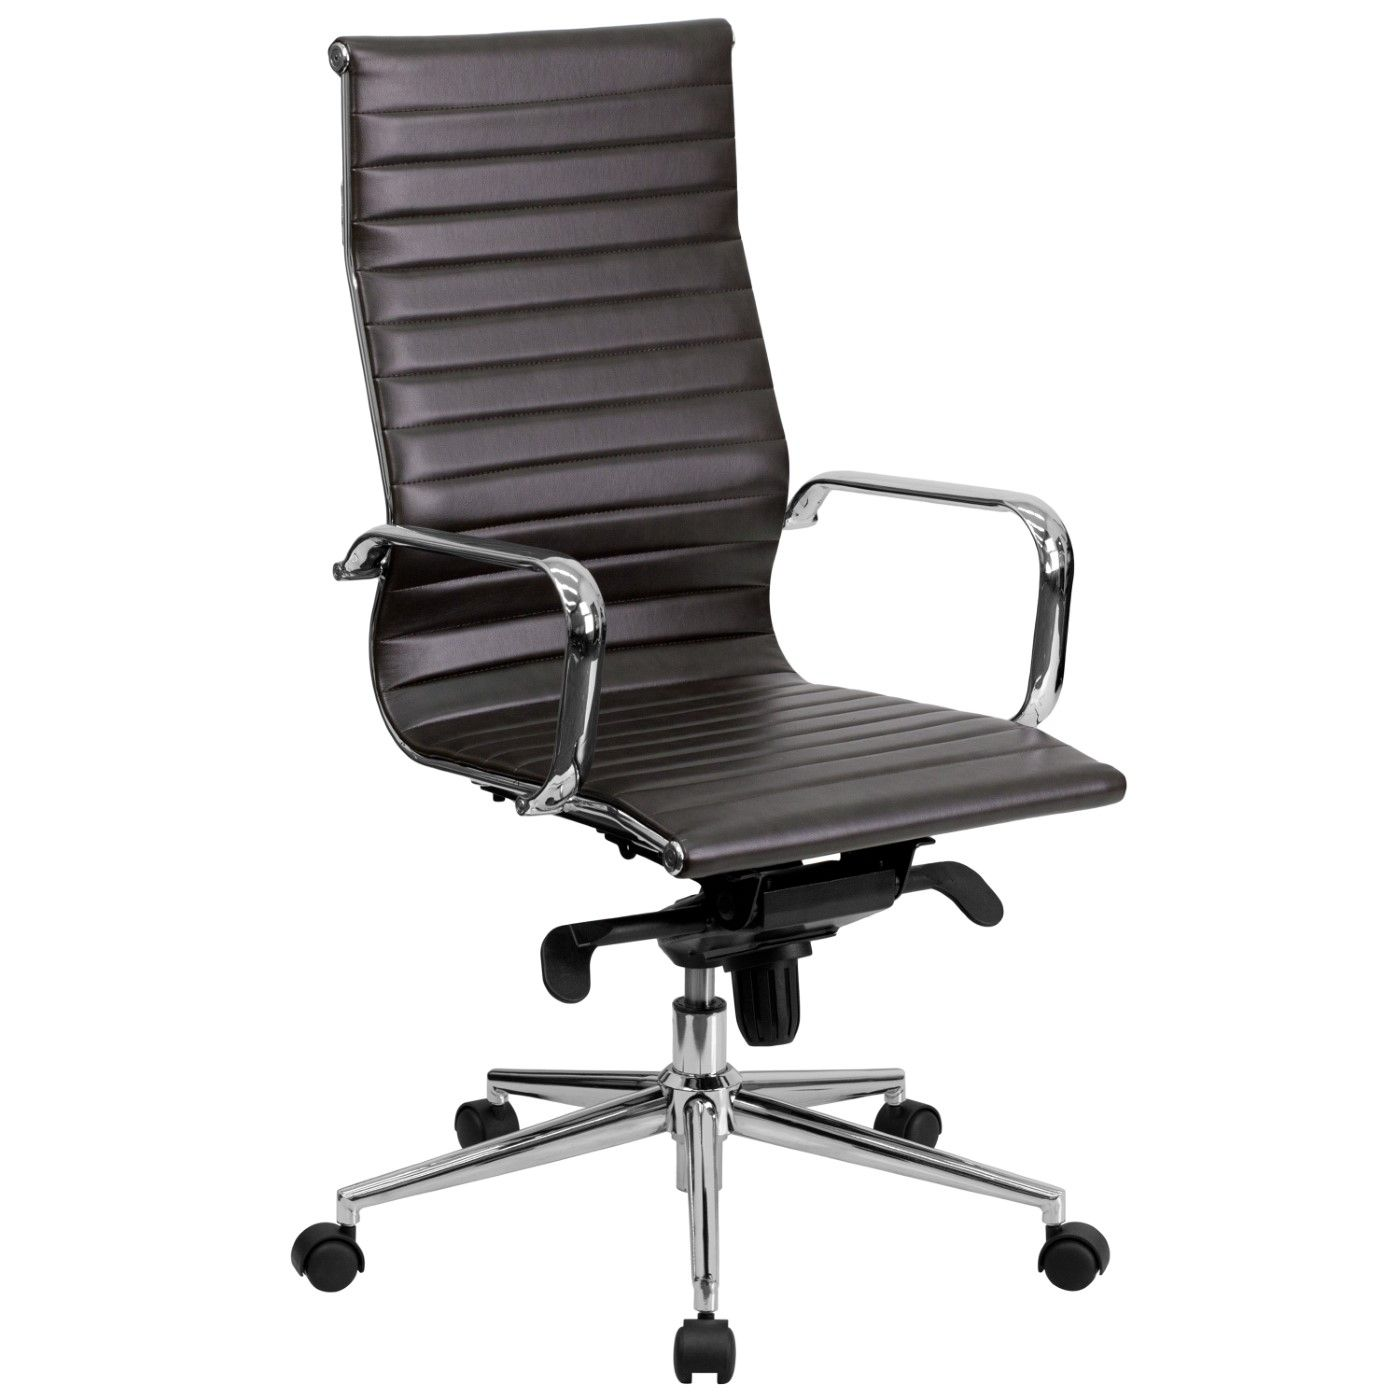 High Back Brown Ribbed LeatherSoft Executive Swivel Office Chair with Knee-Tilt Control and Arms